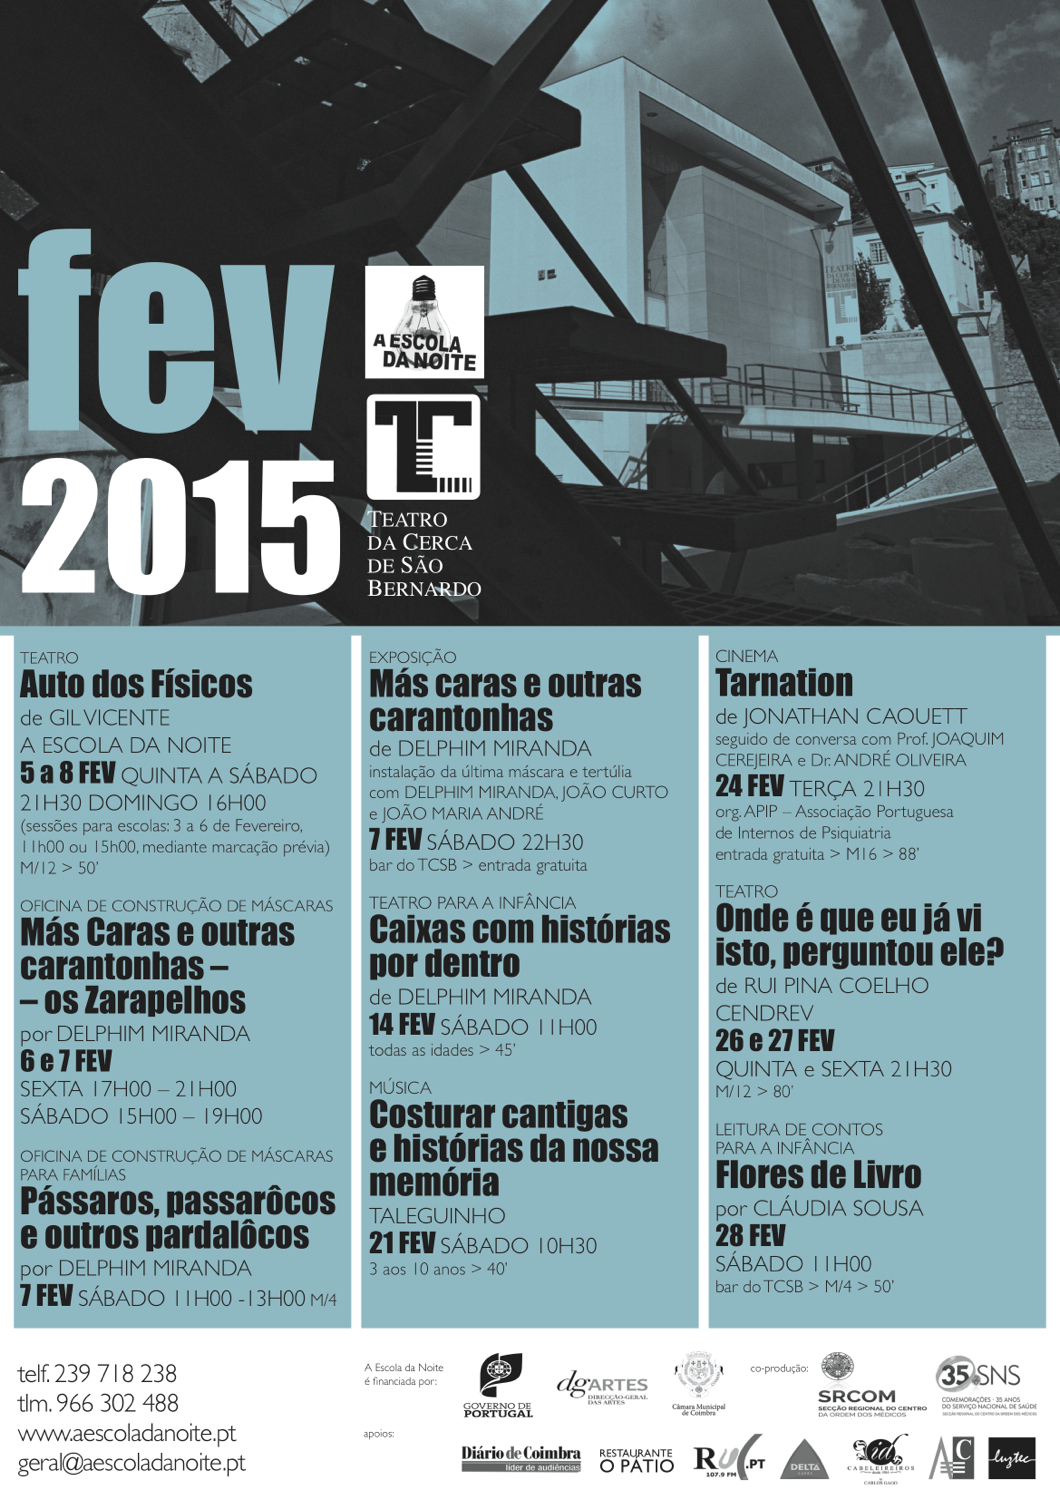 cartaz fev 2015 cerca_red